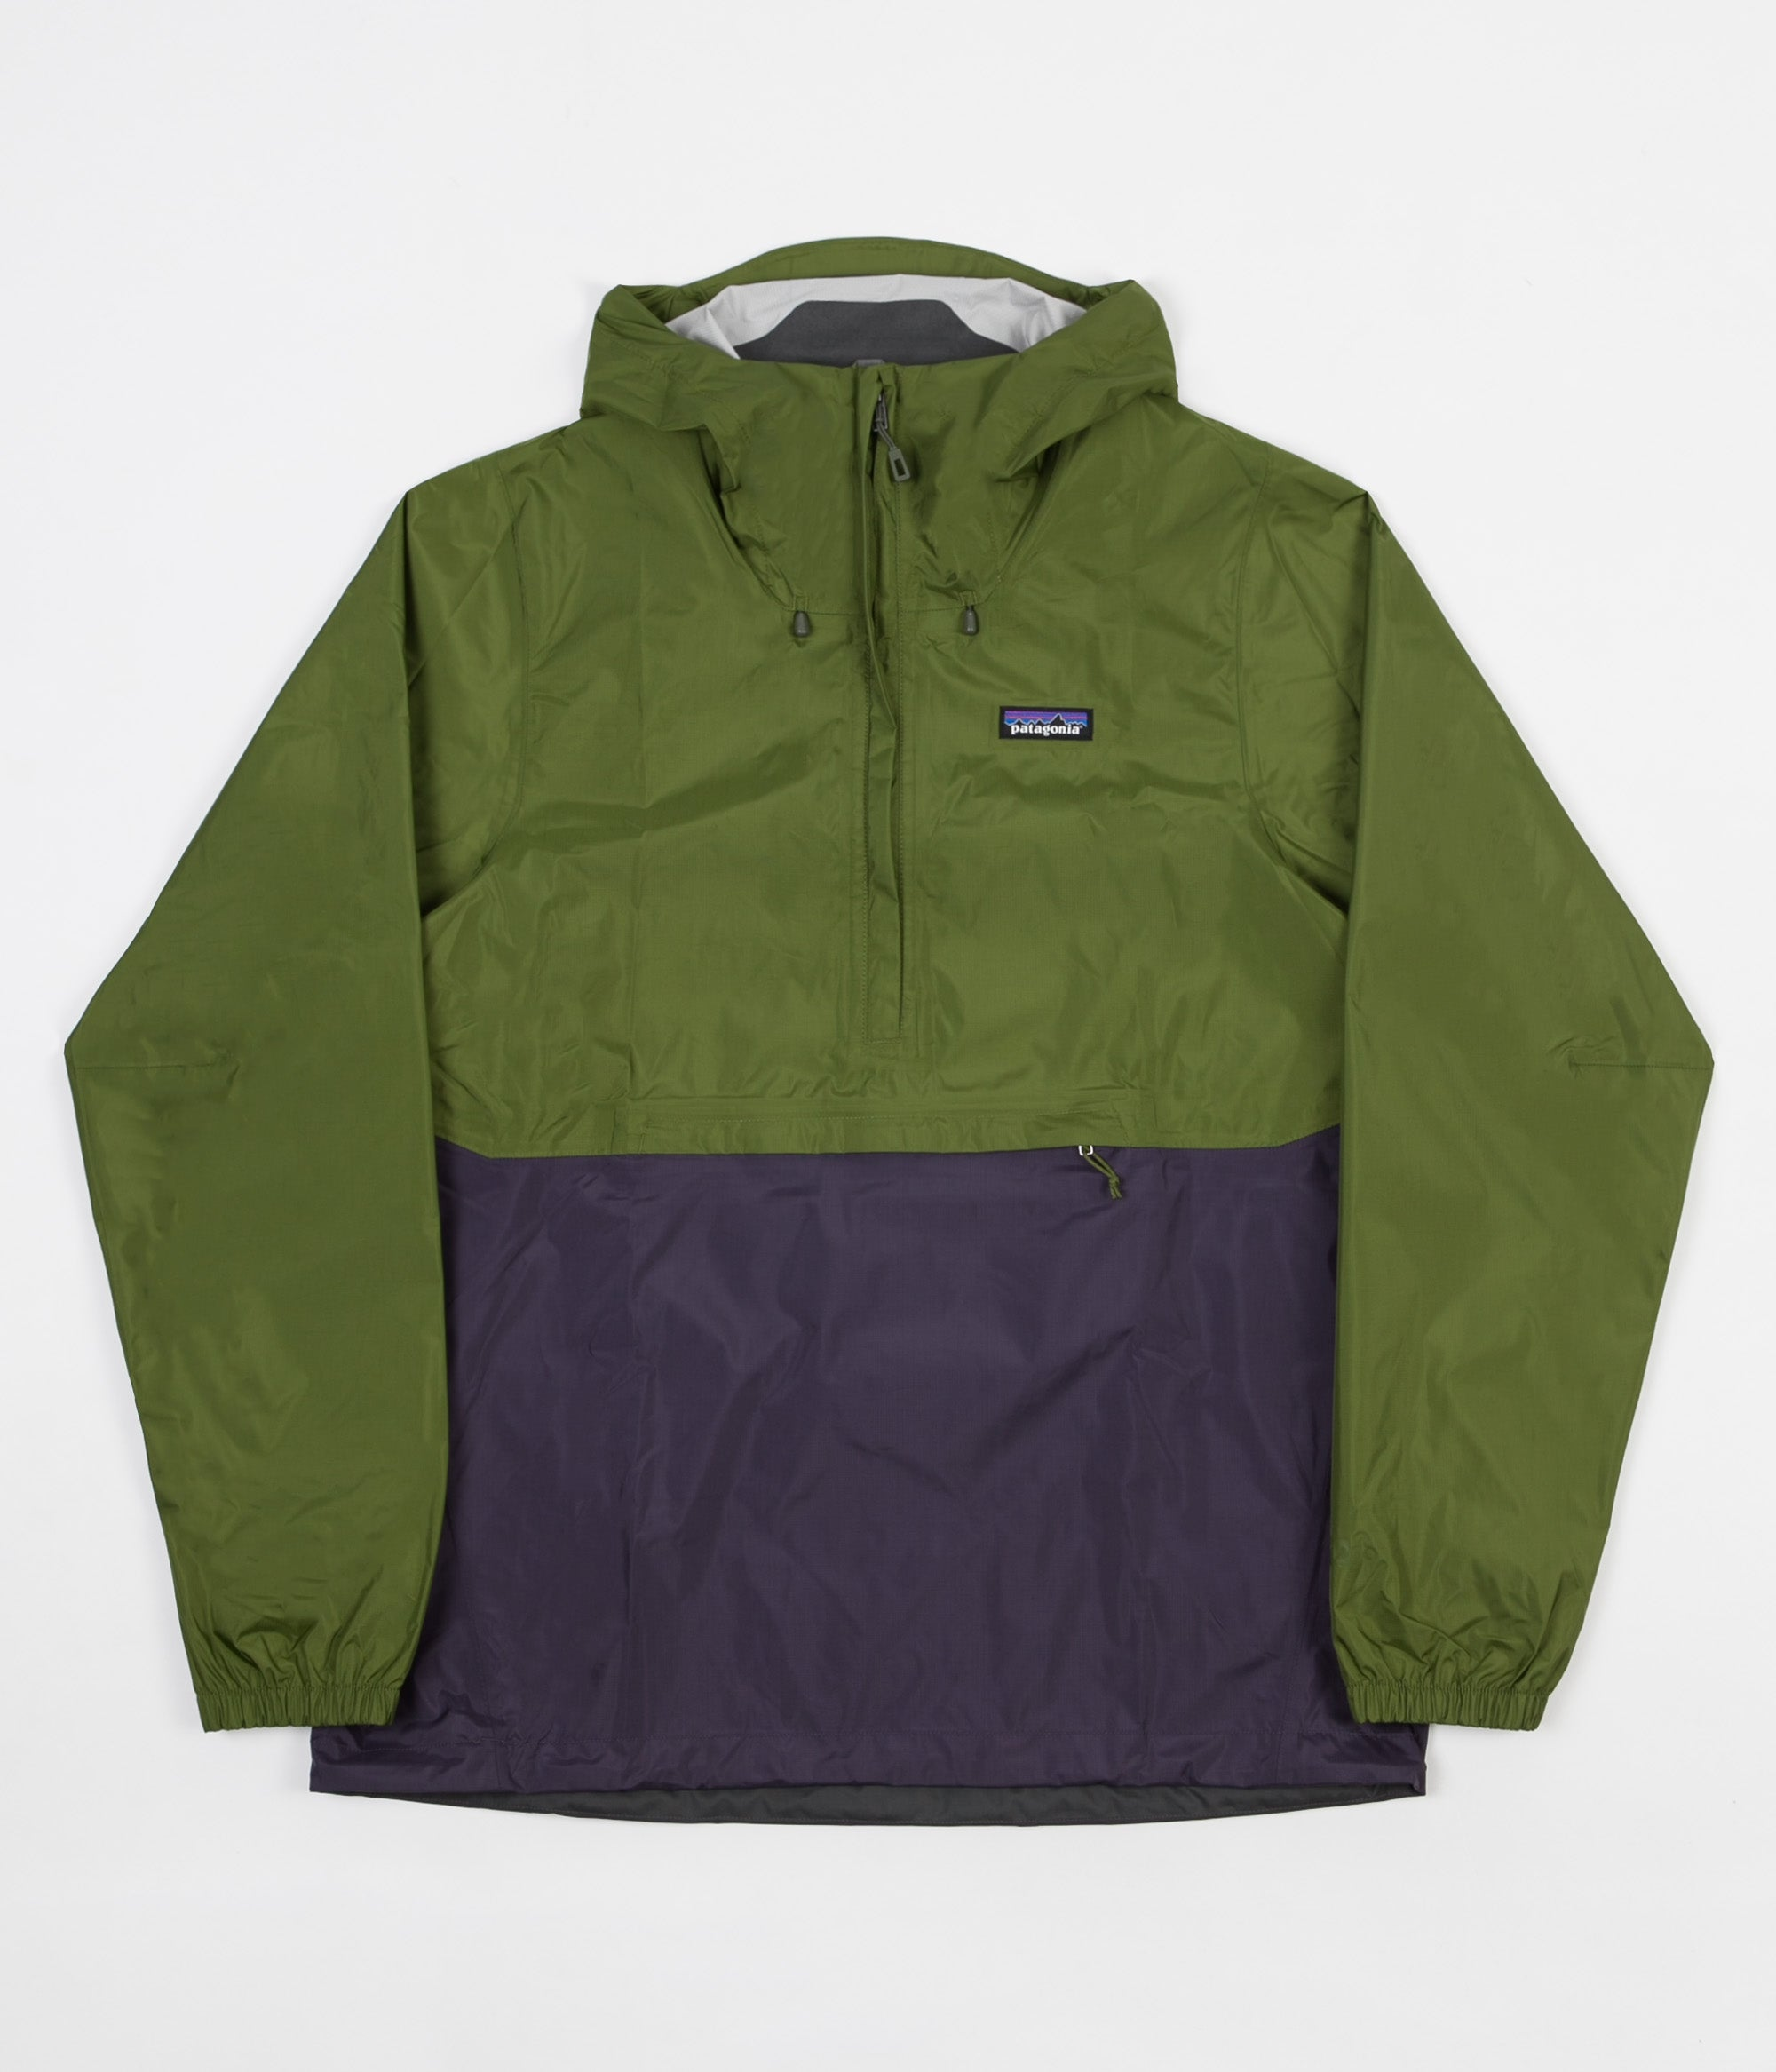 Patagonia Torrentshell Pullover Jacket Sprouted Green